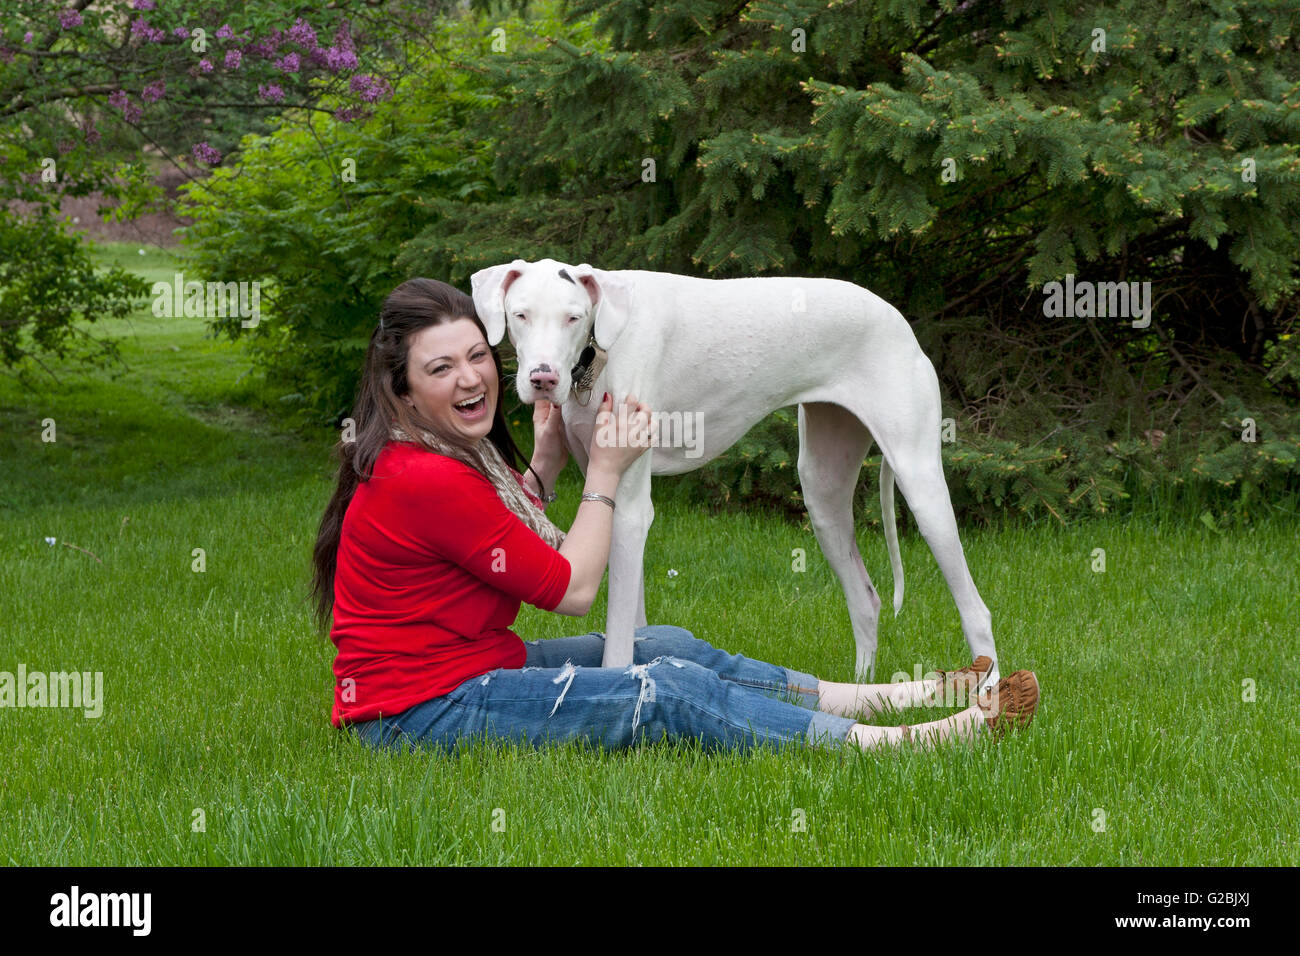 Girl in red laughs while petting big dog - Stock Image